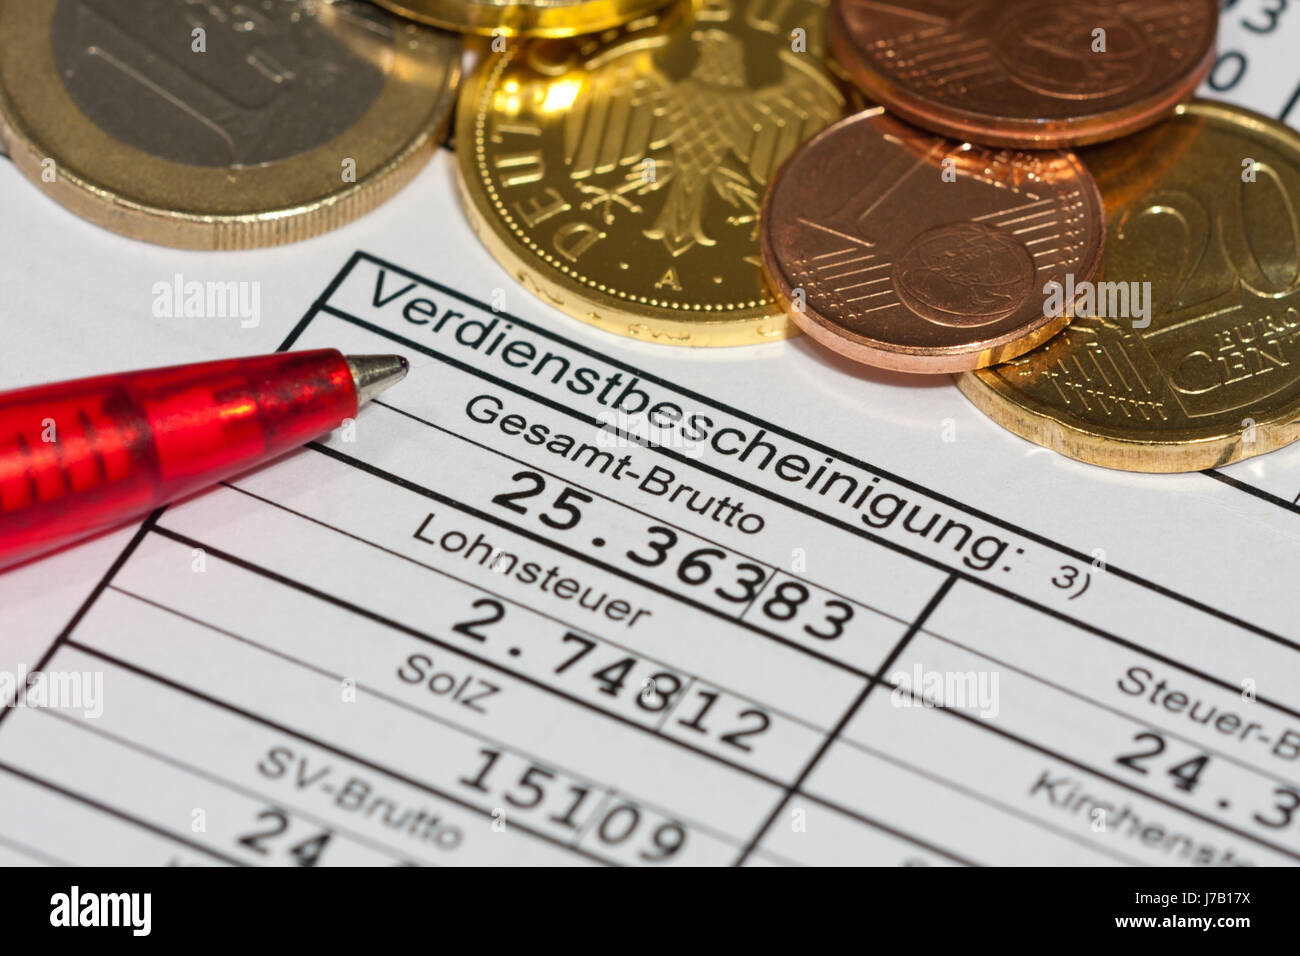 accounting tax salary net gross payroll accounting wages wage abrechnen Stock Photo